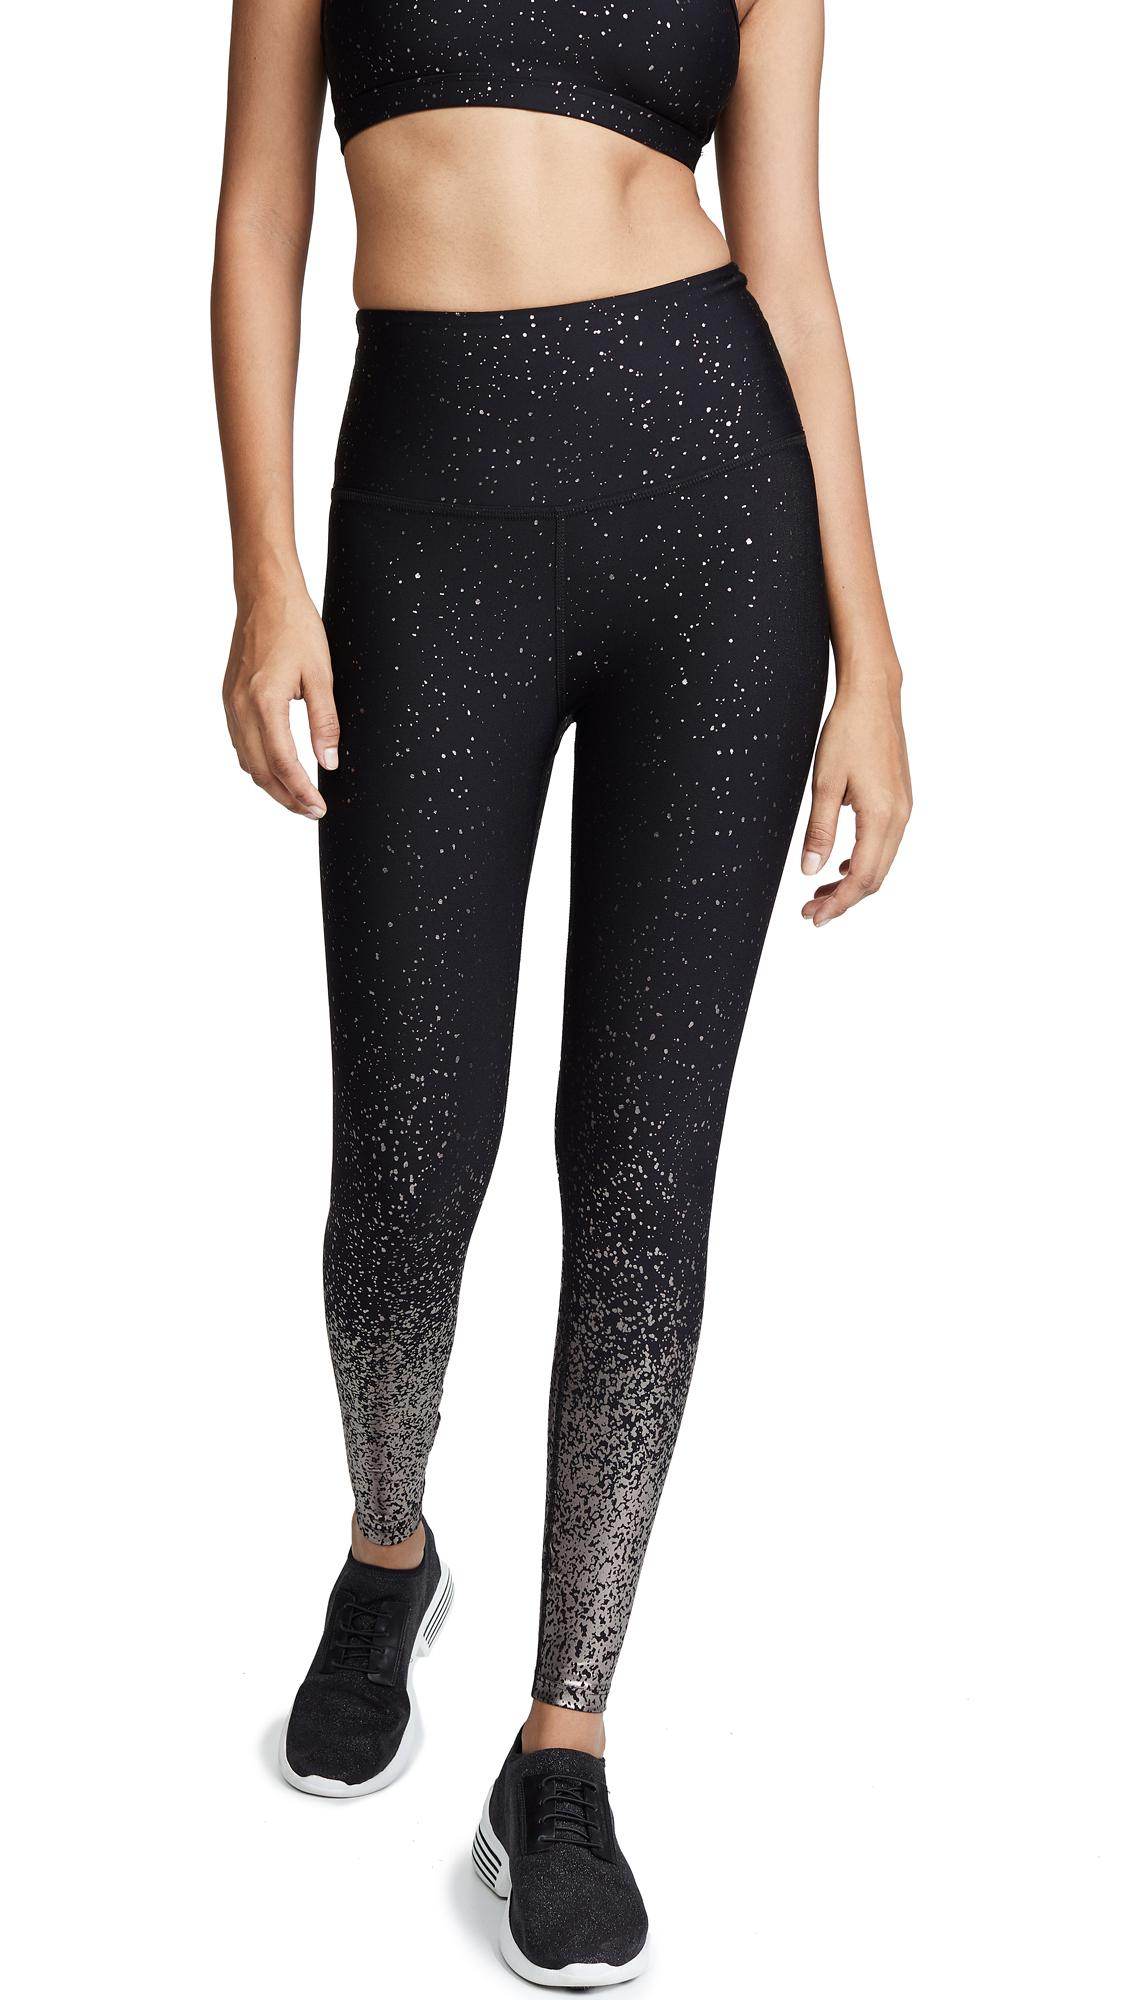 393d447f13 Beyond Yoga Alloy Ombre High Waisted Midi Leggings In Black/Gunmetal Speckle